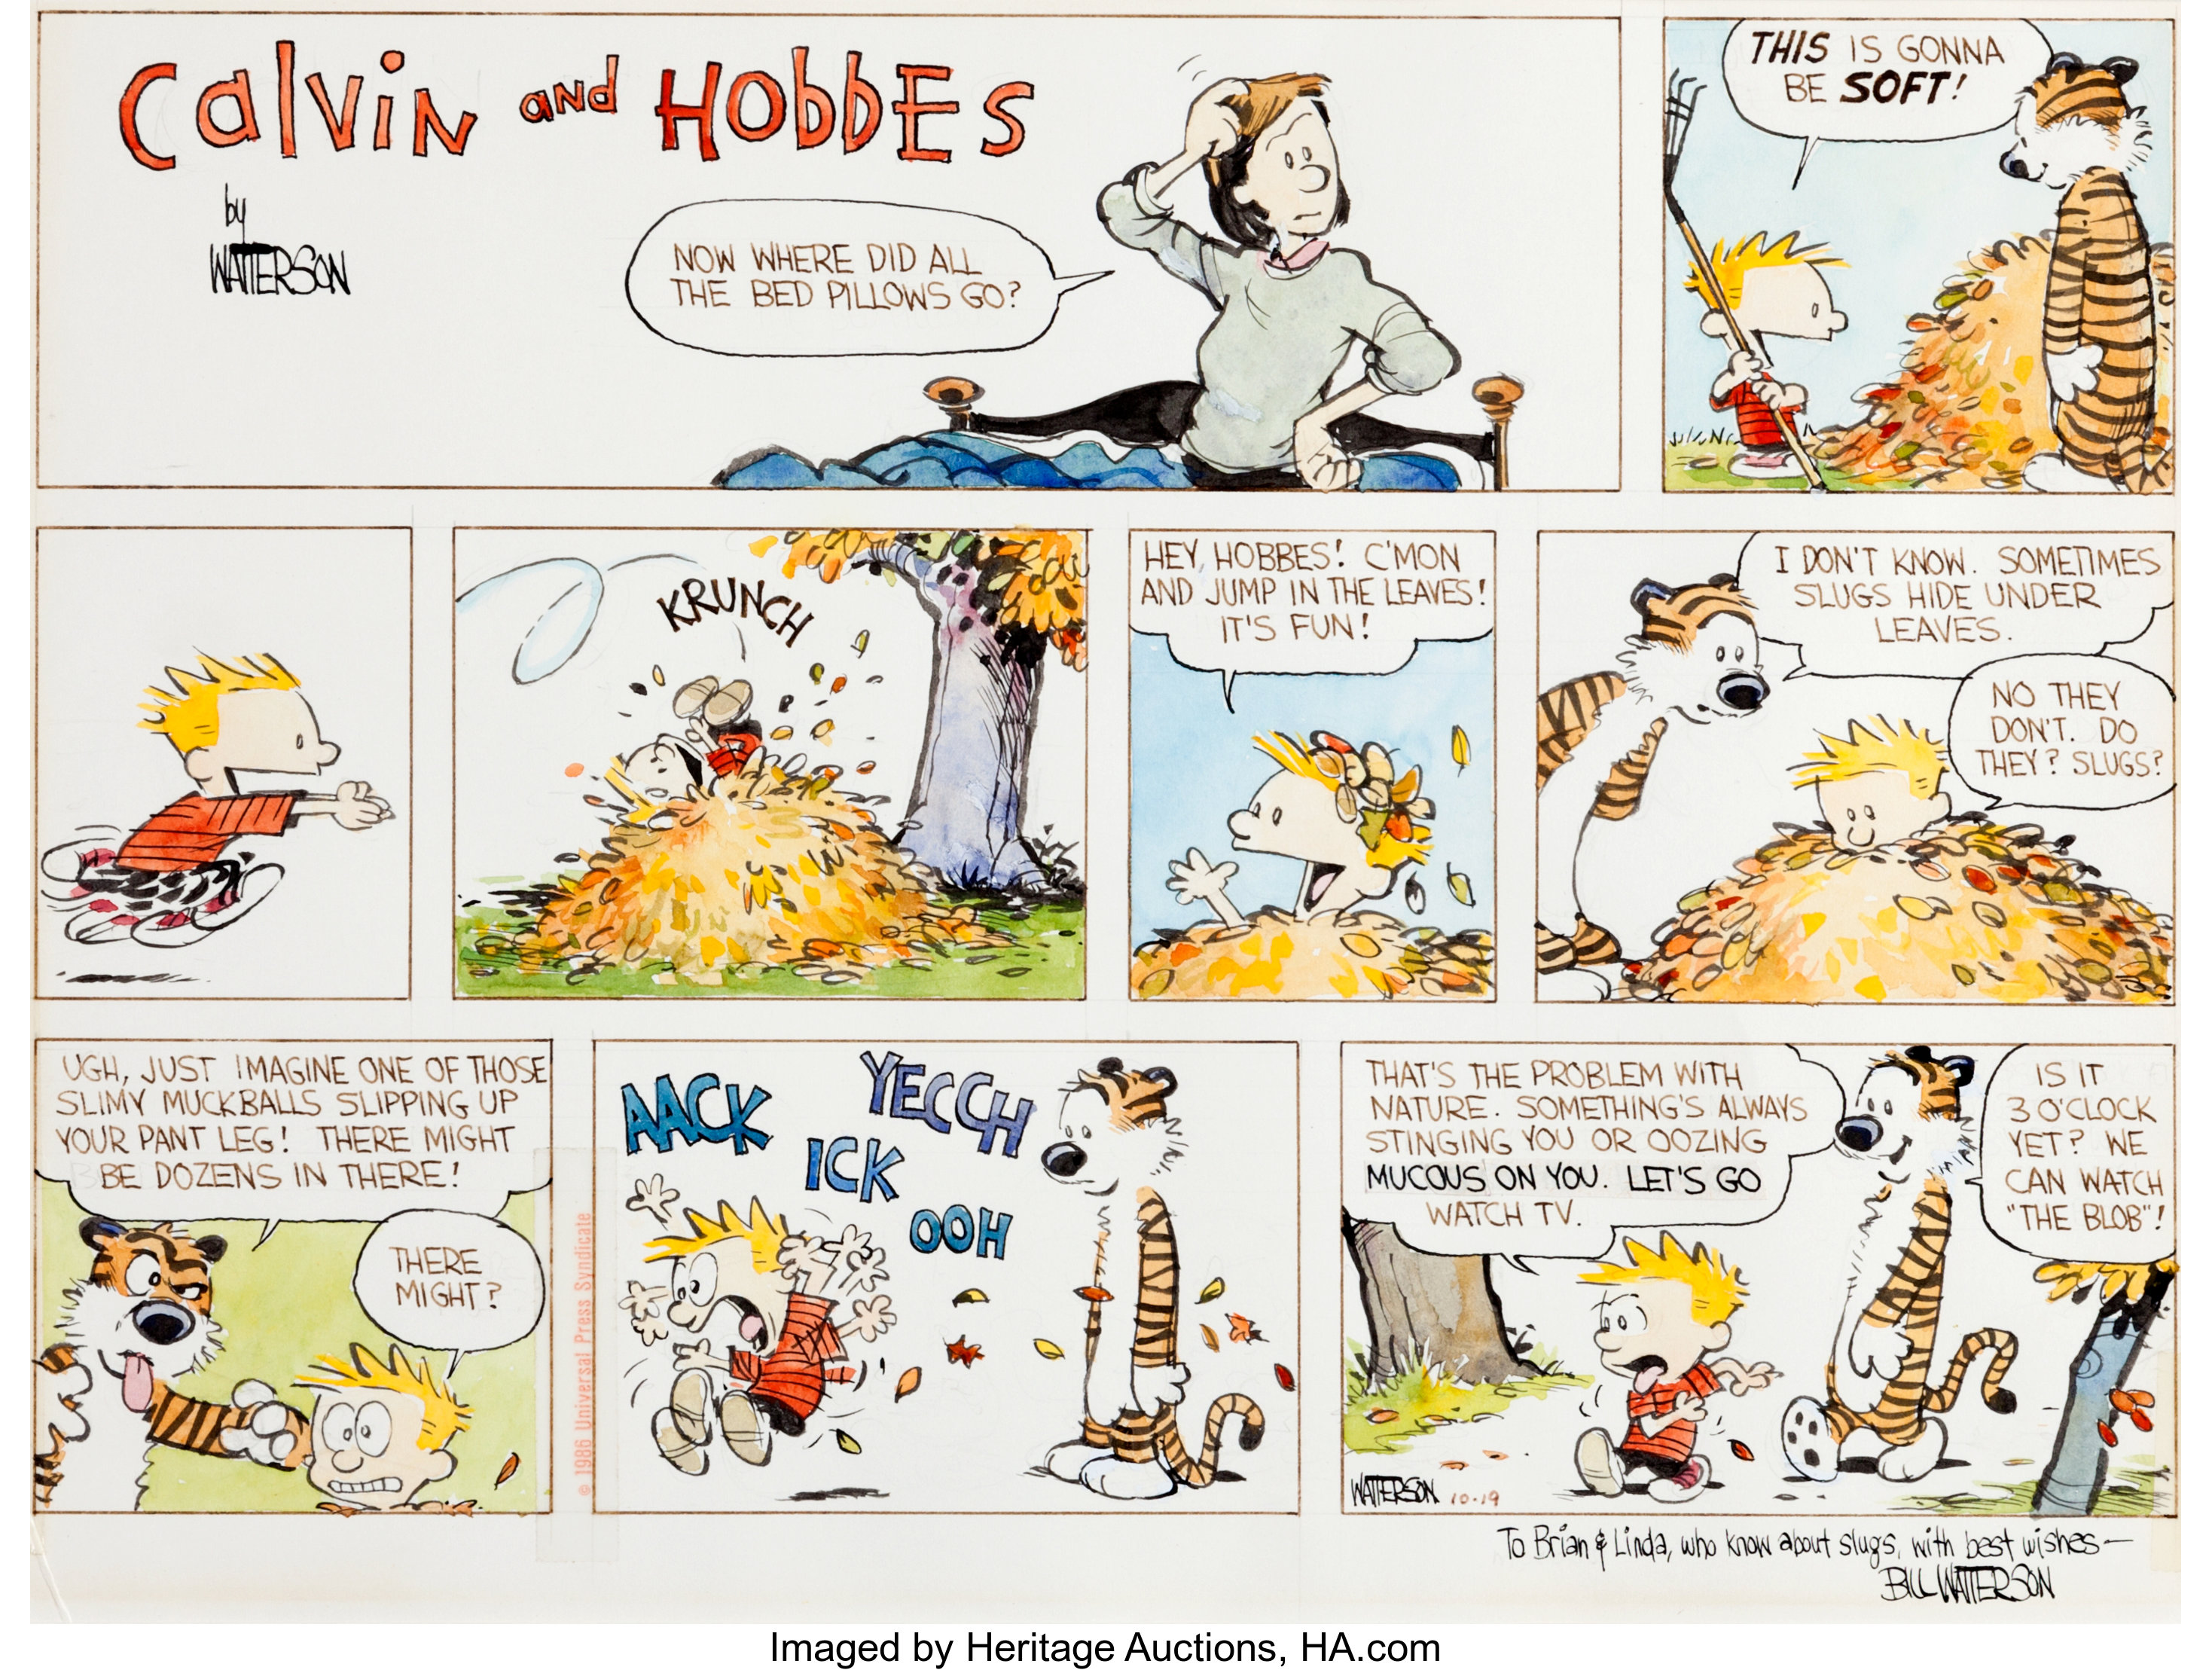 Original Sunday comic strip art for Calvin & Hobbes, drawn by Bill Watterson. It depicts Calvin and Hobbes leaping into a pile of raked leaves.